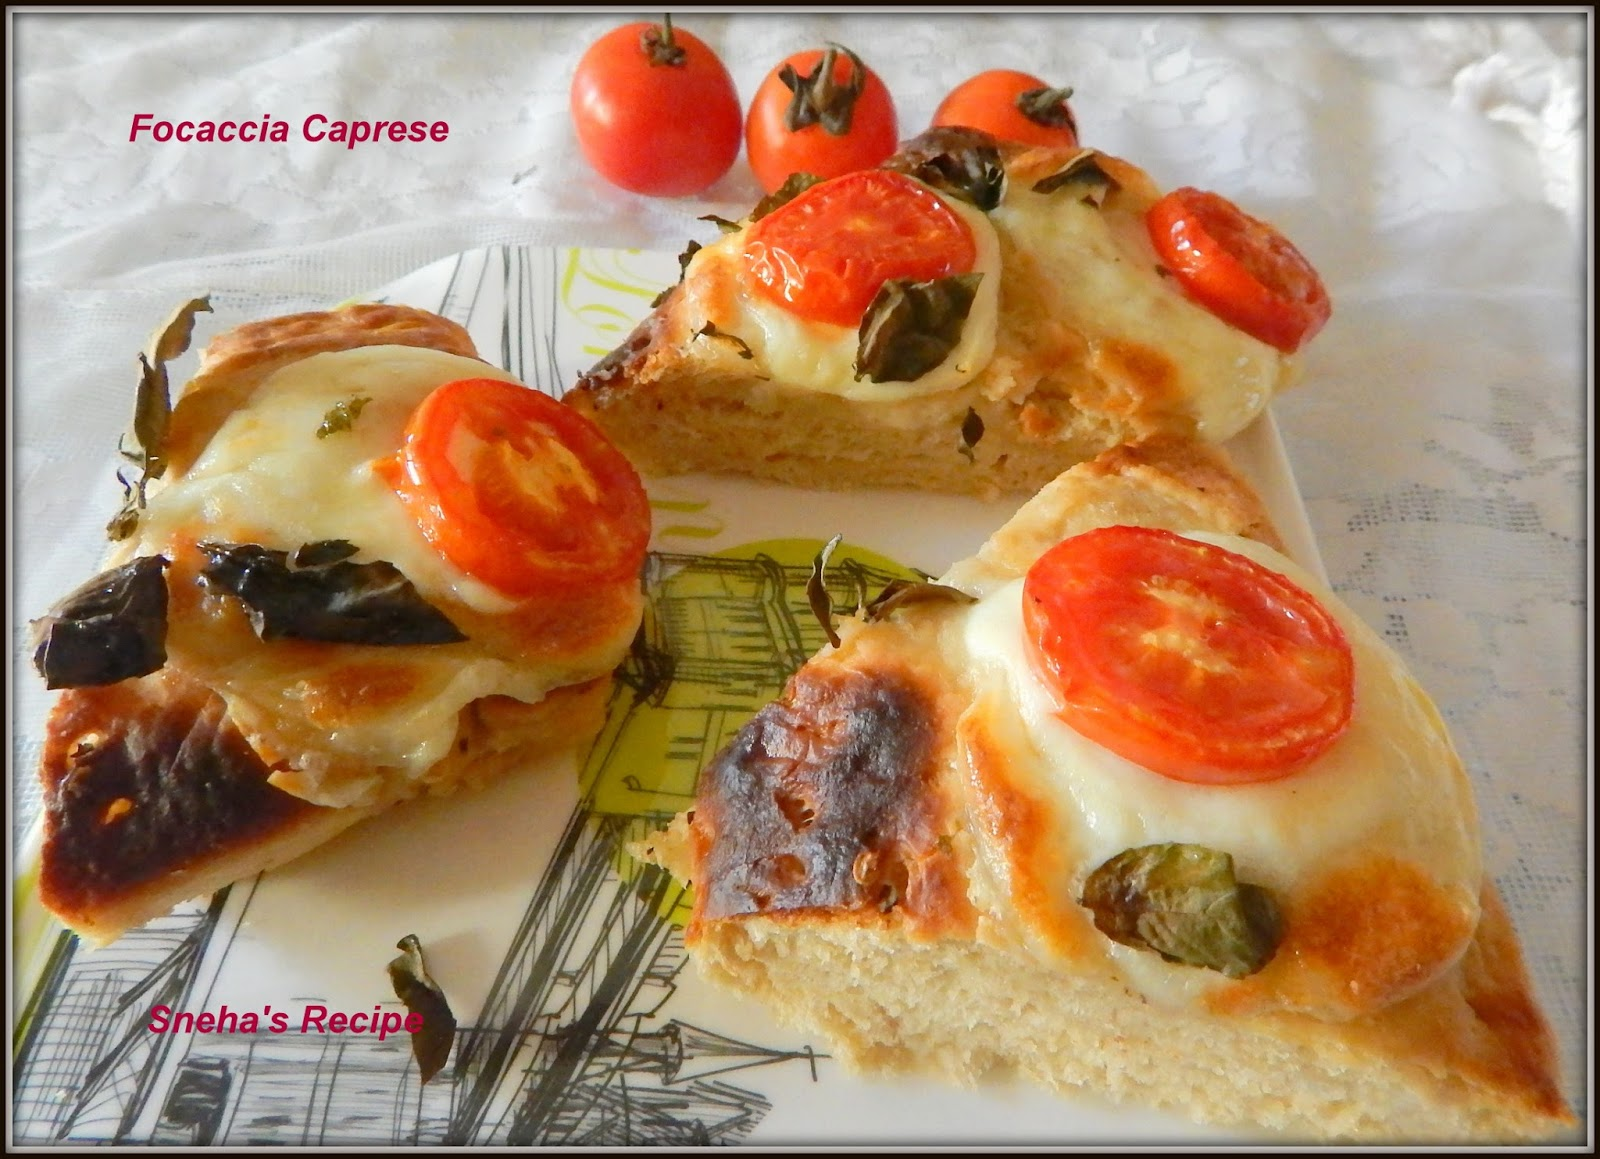 Drizzle Some More Herbed Oil Over The Topping And Return Bread To Oven Turn 220 C Bake Focaccia For 5 Minutes Or Until